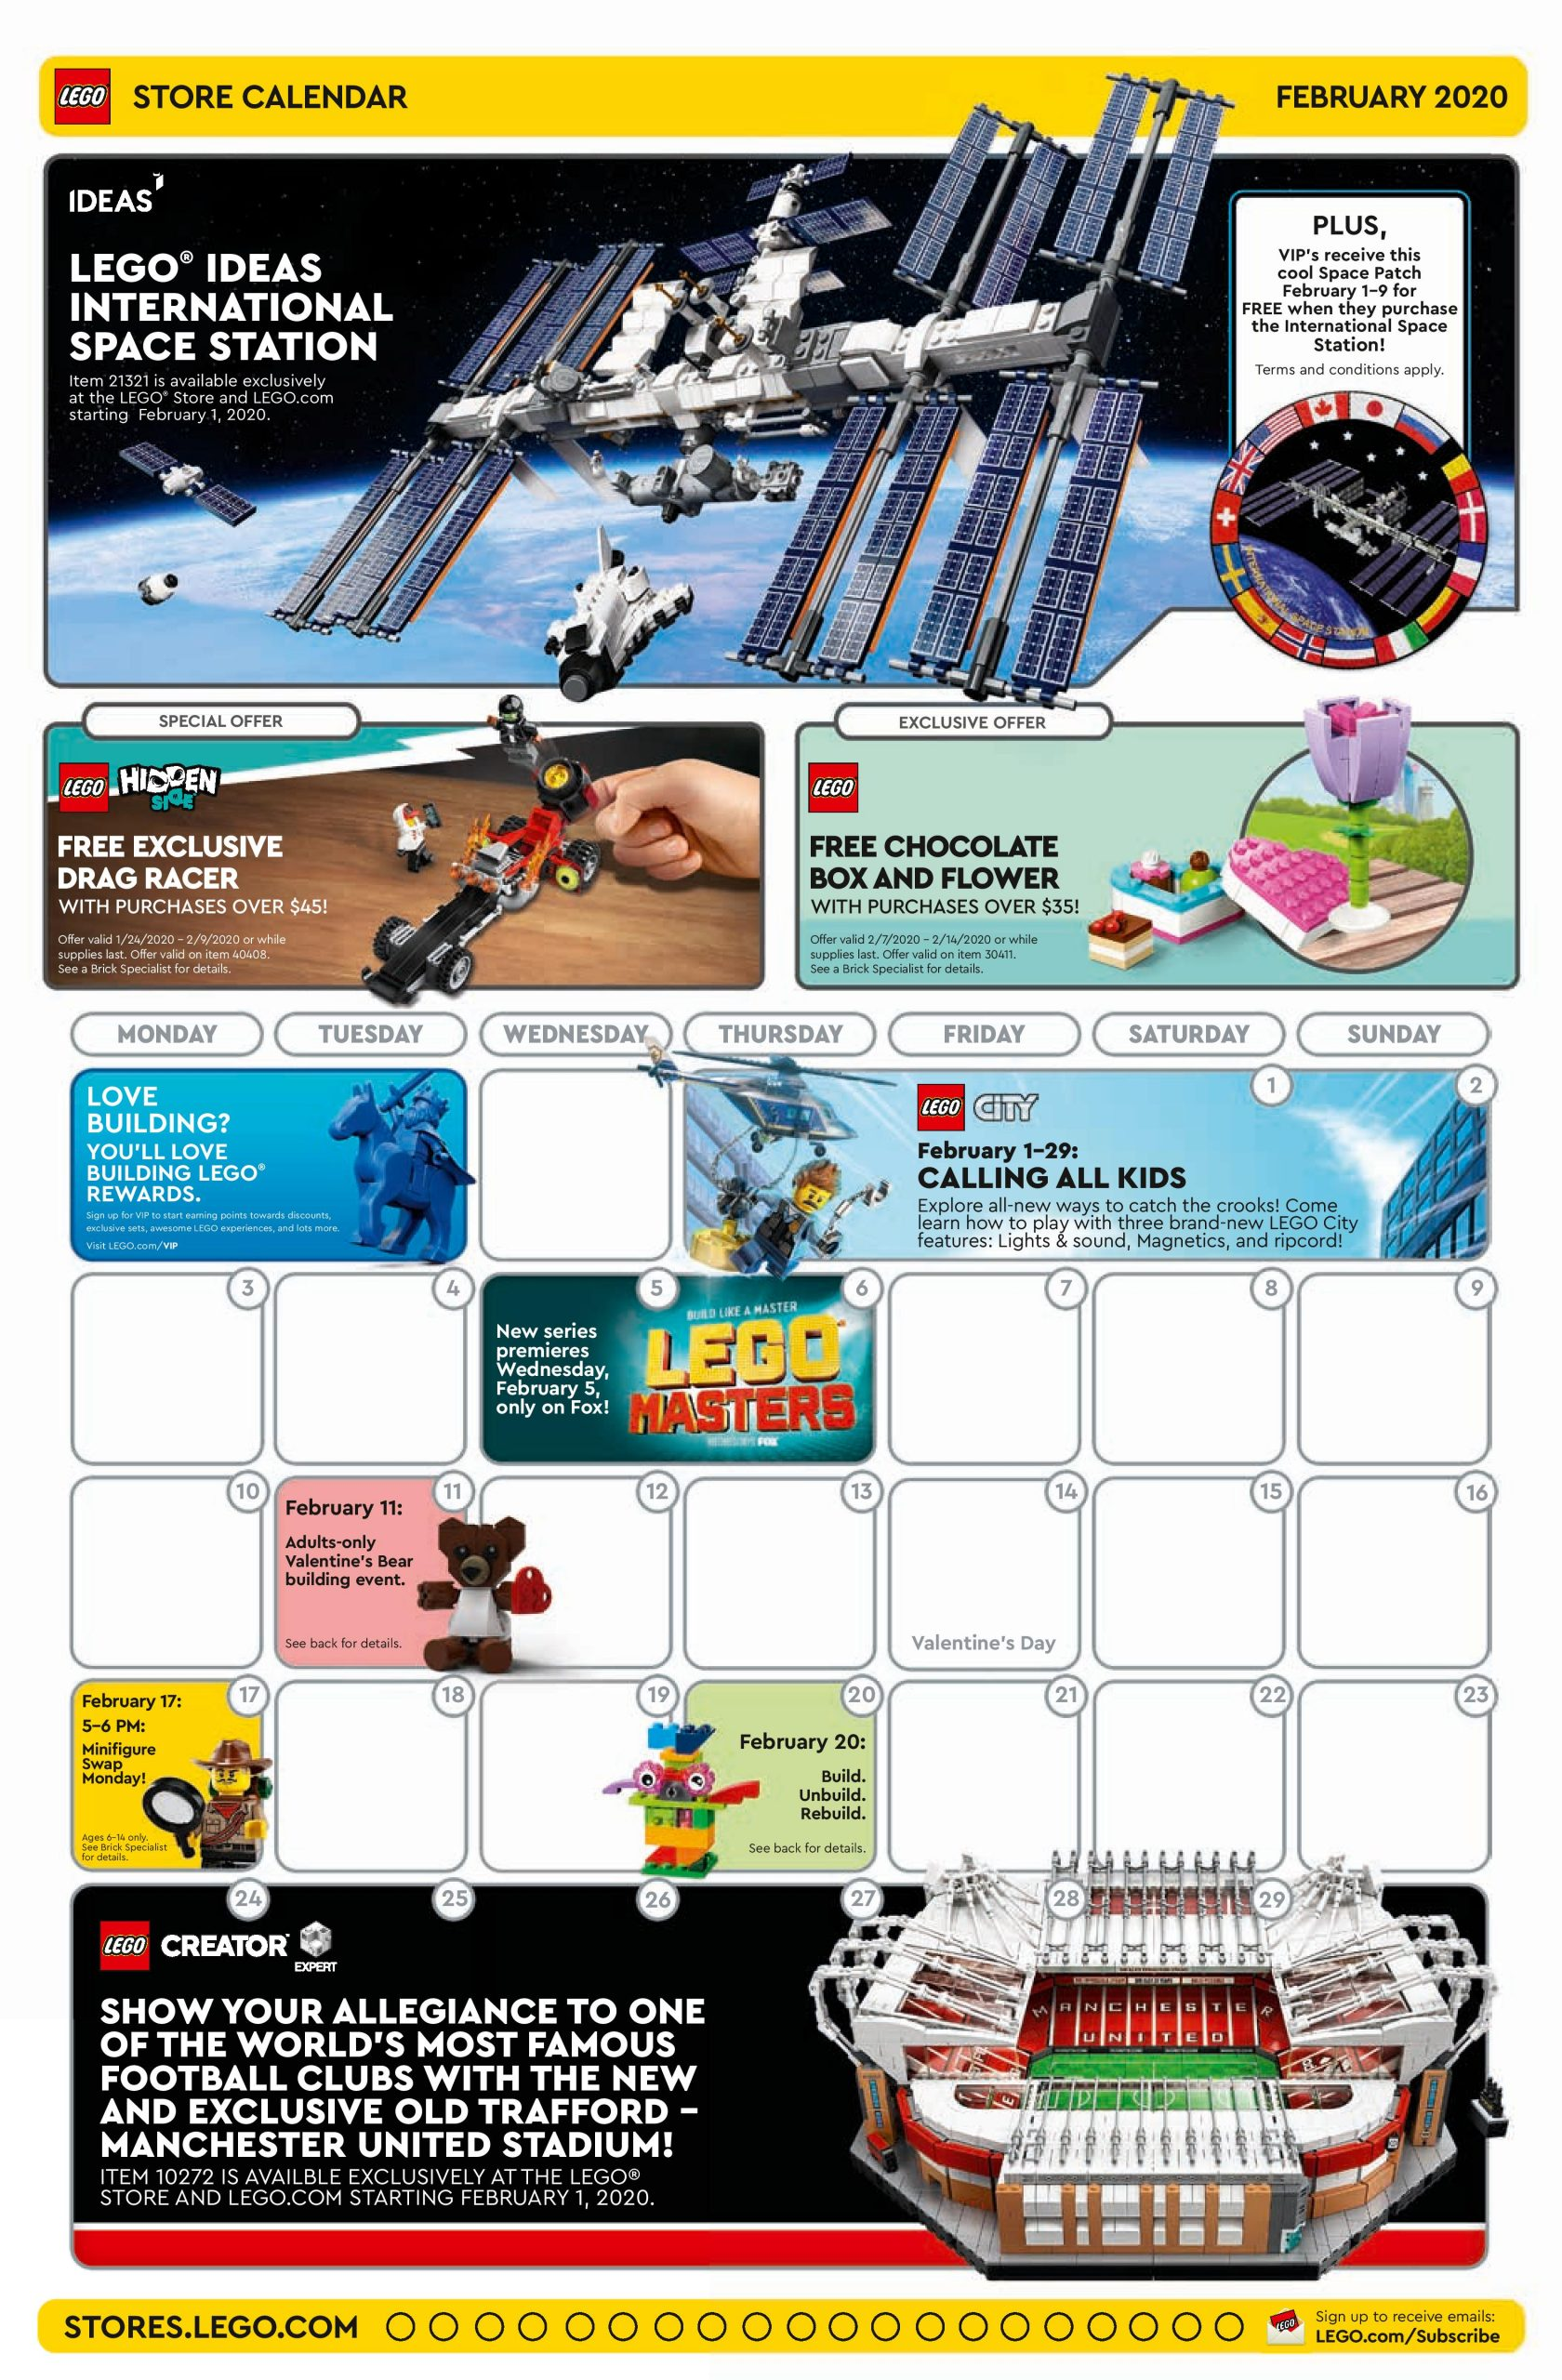 Lego Calendar April 2021 LEGO February 2020 Store Calendar Promotions & Events – The Brick Fan